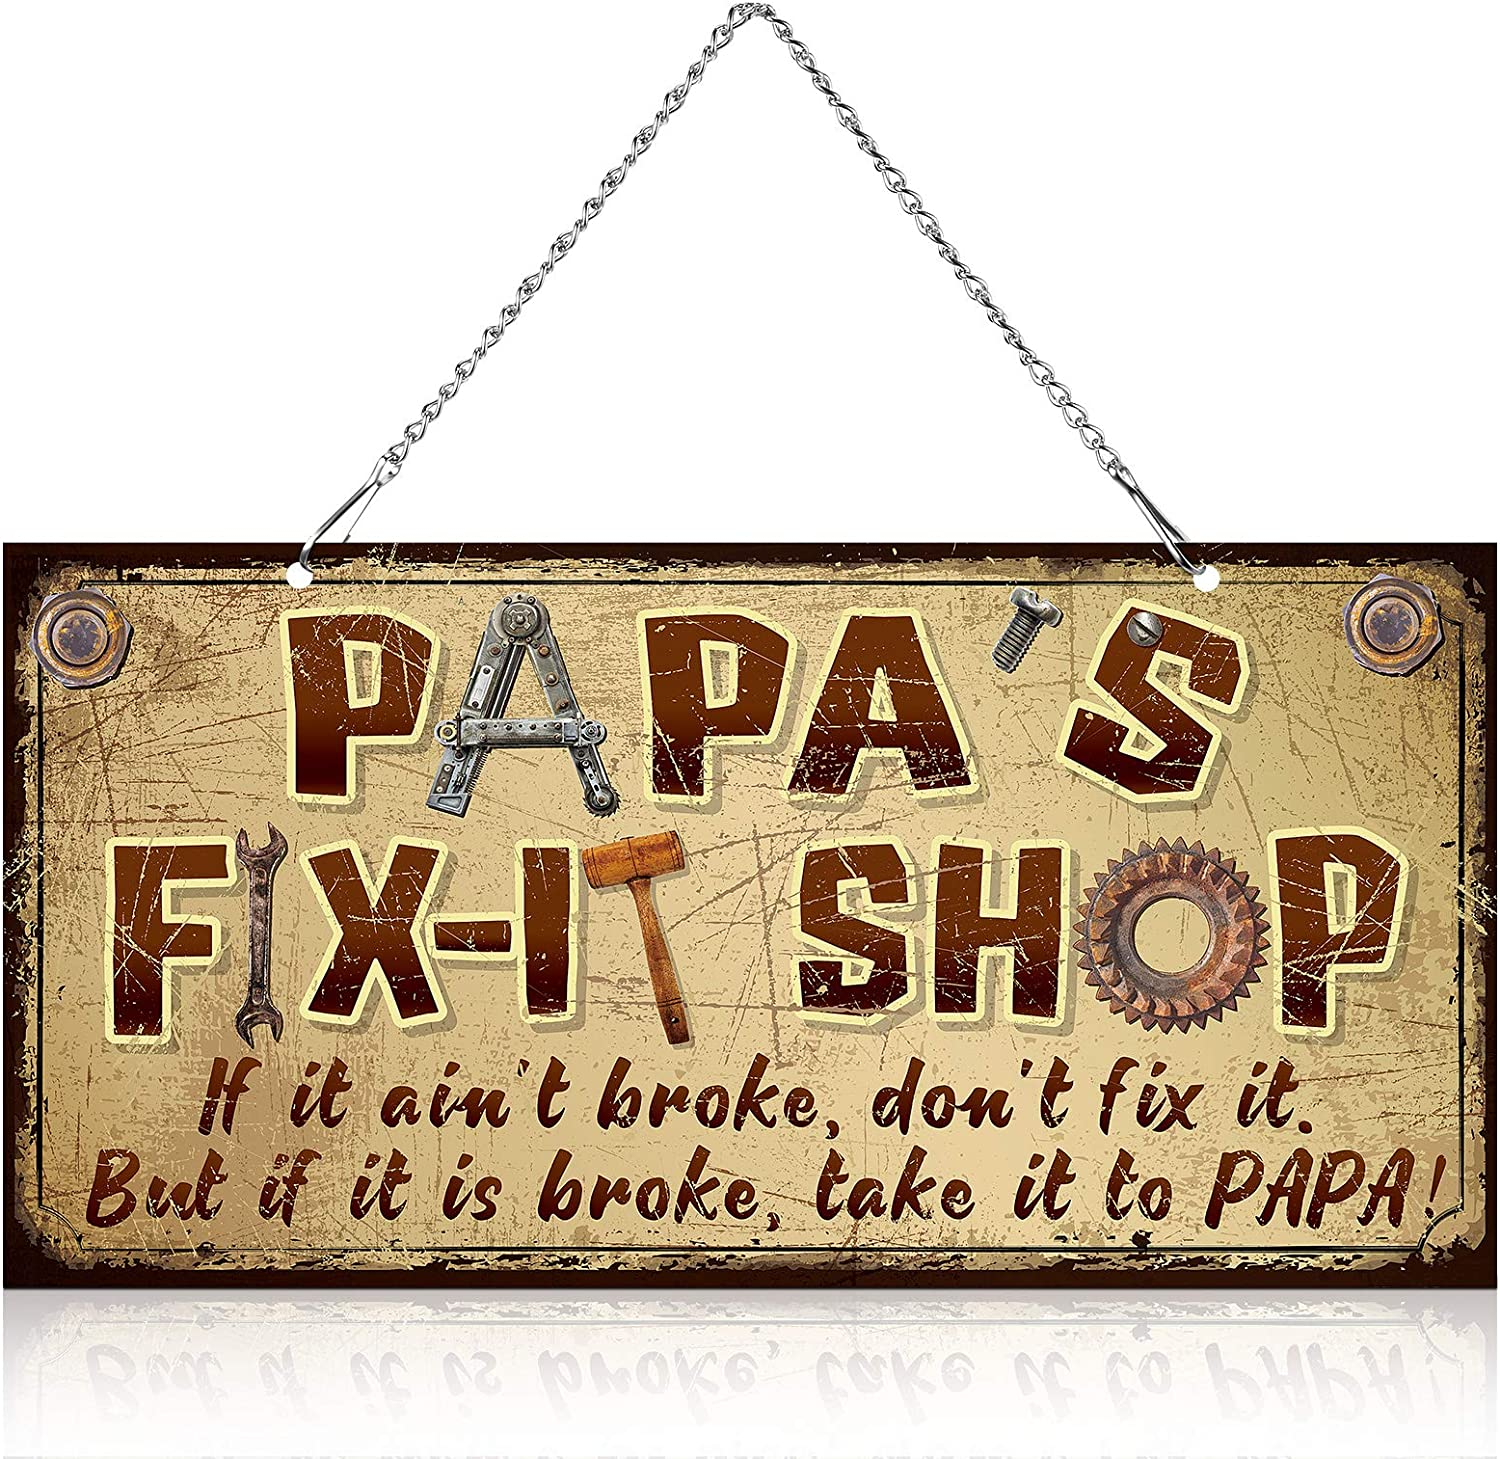 12 x 6 Inch Metal Hanging Vintage Sign Papa's Fix-It Shop, If It Ain't Broke, Don't Fix It, But If It is Broke, Take It to Papa Funny Decorative Saying Signs for Papa Grandpa Father's Day